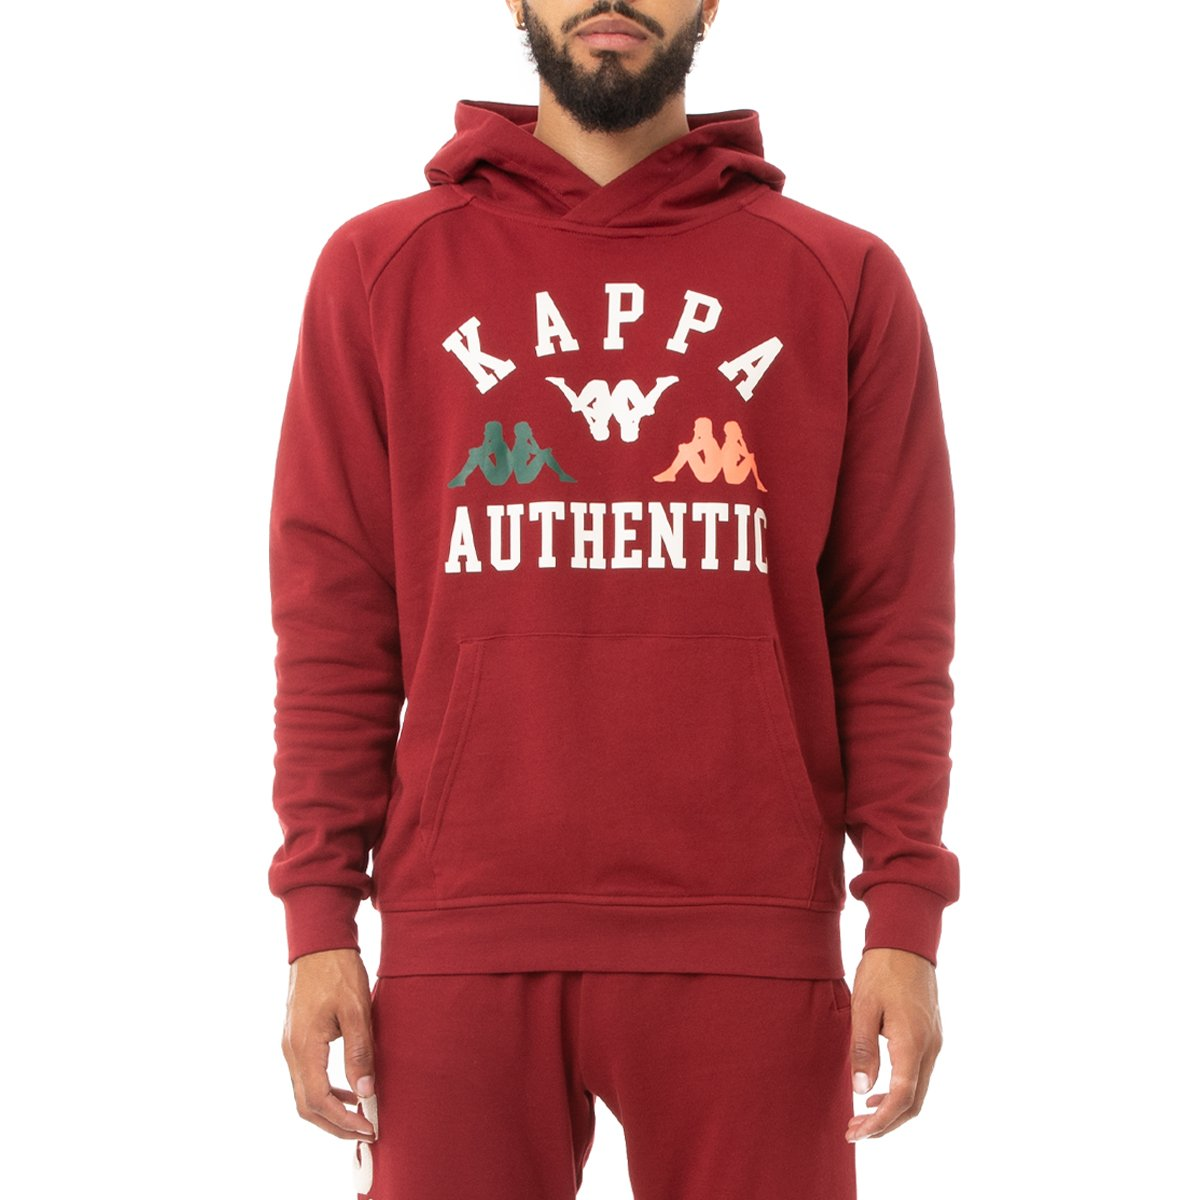 Kappa Authentic Kawar Hoodie - Red